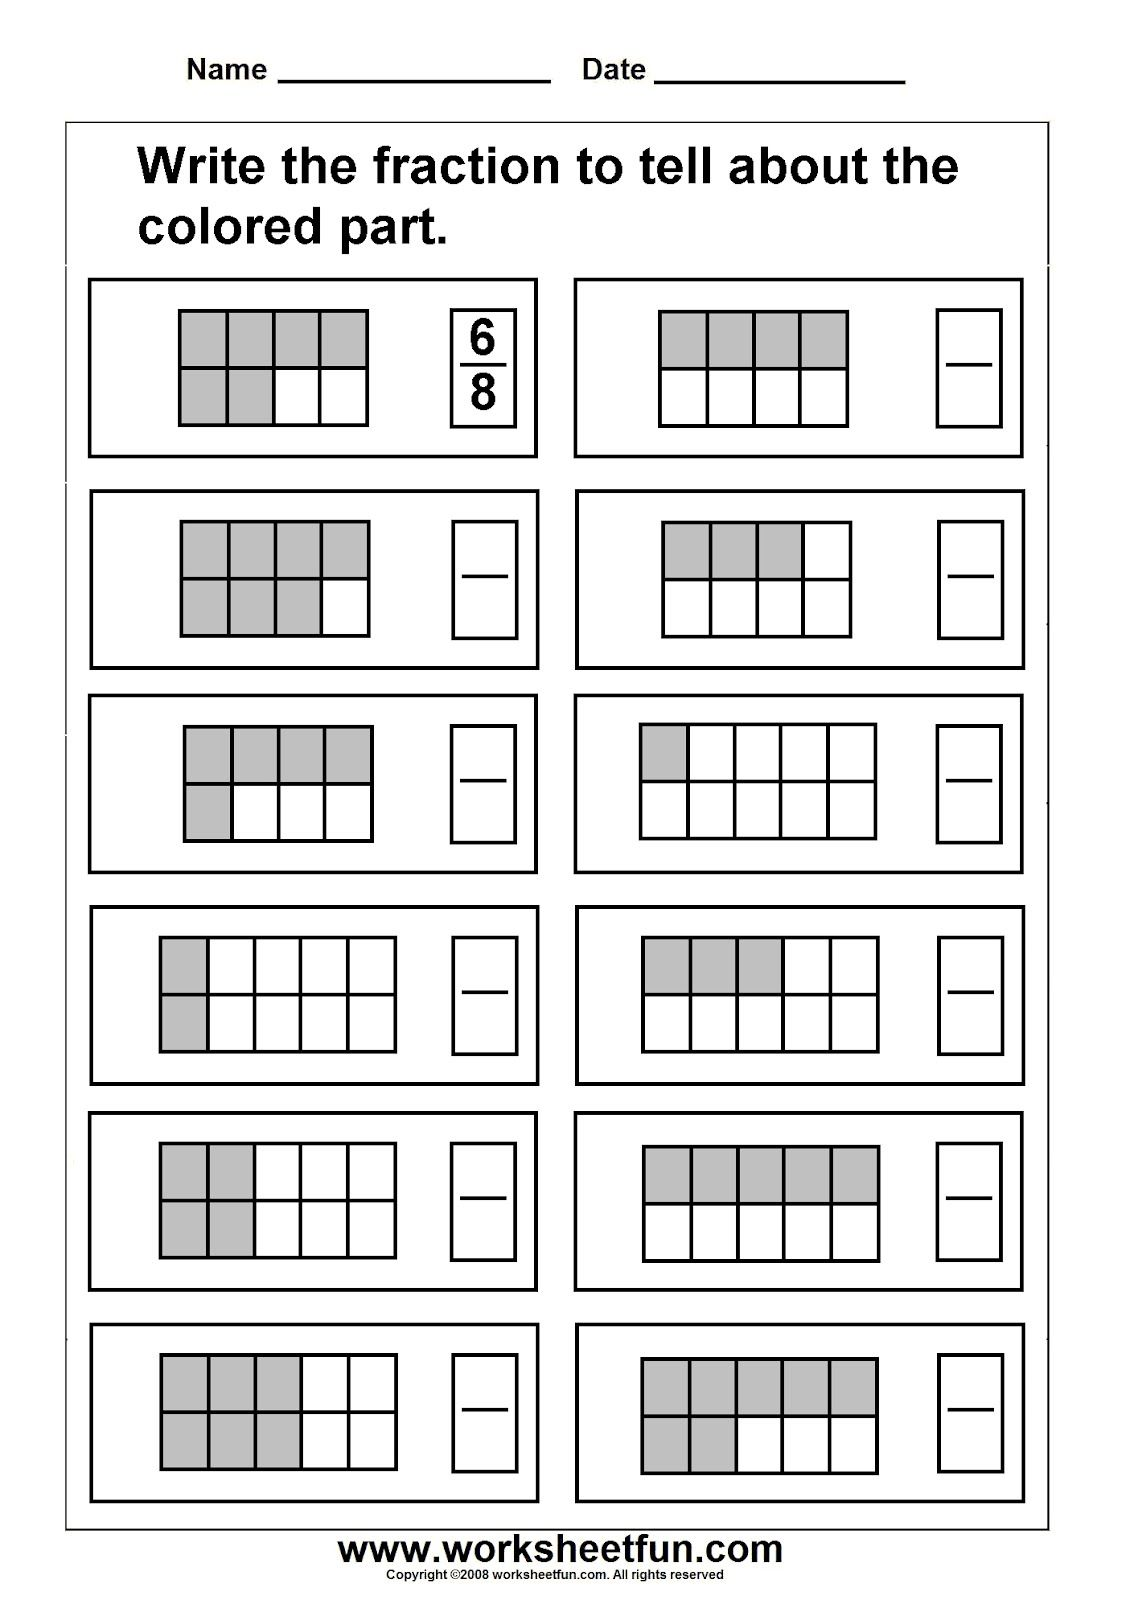 math worksheet : fractions  educationenglish free worksheets  pinterest  fractions : Free Fraction Worksheet